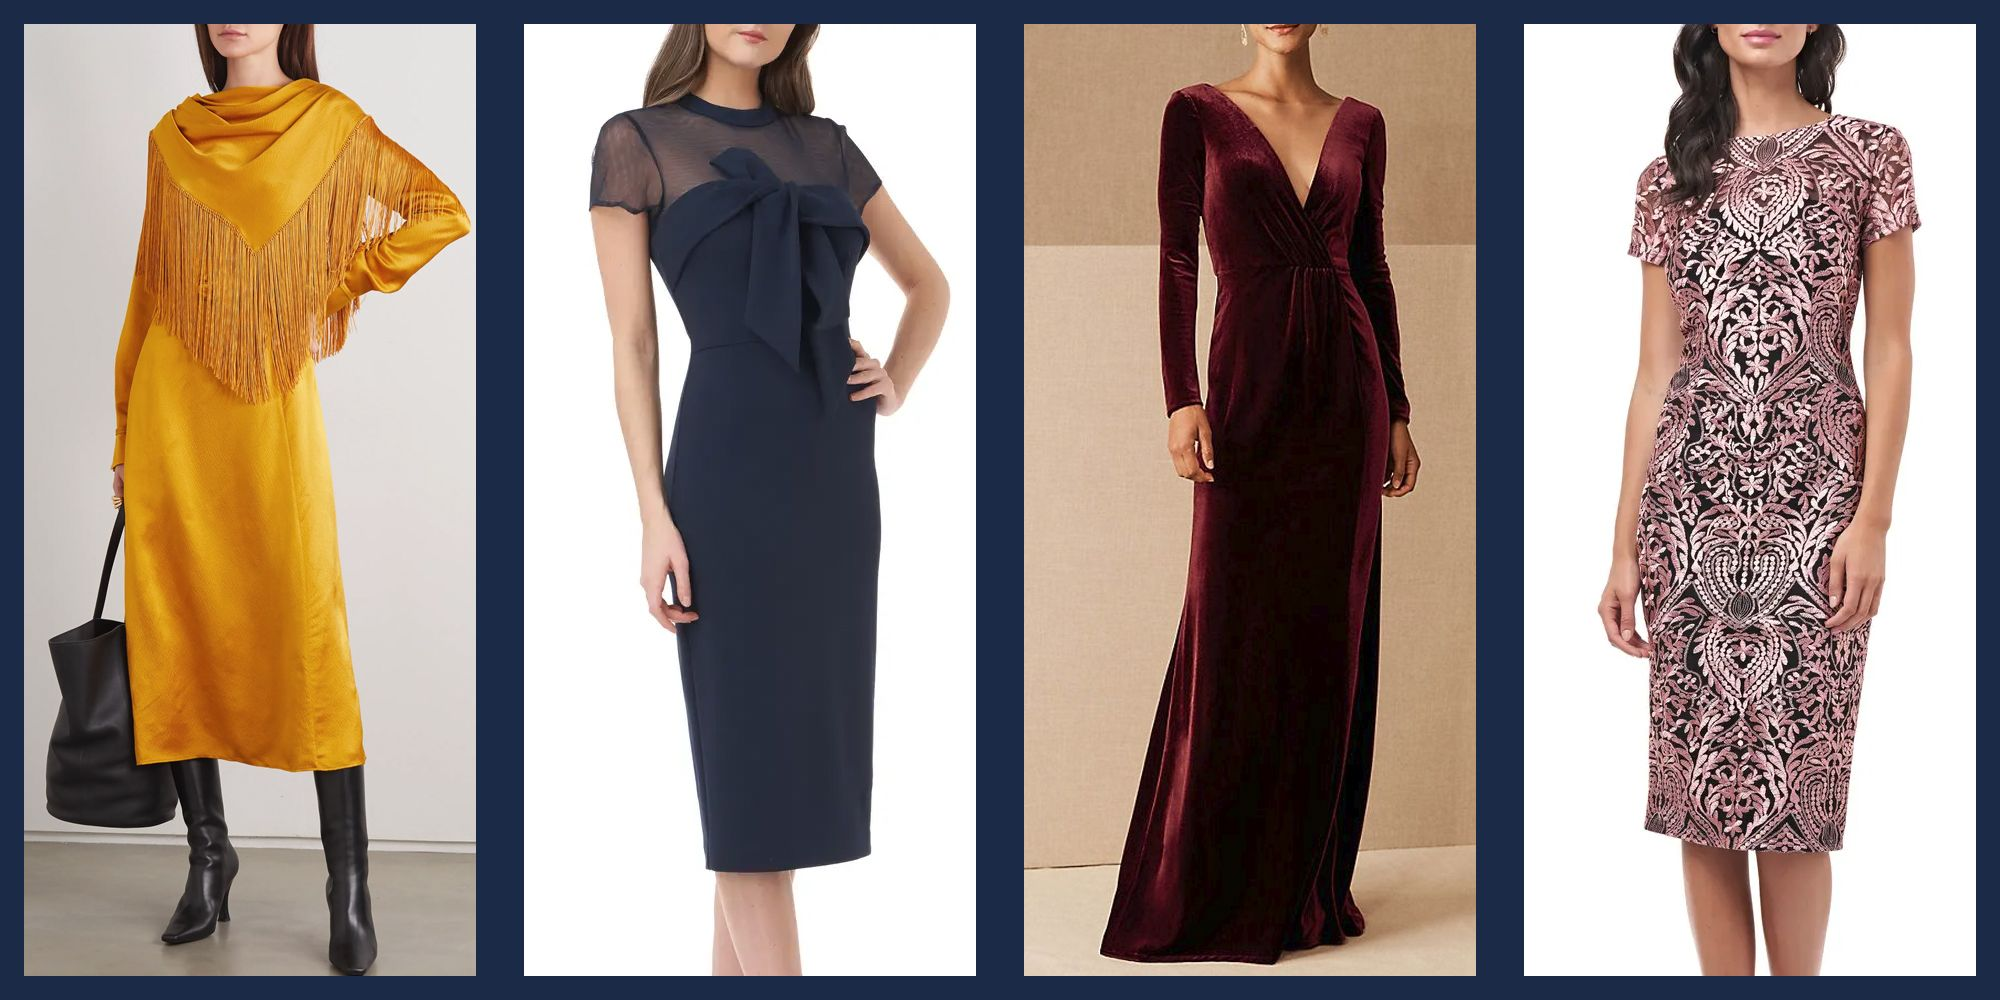 18 Best Winter Wedding Guest Dresses What To Wear To A Winter Wedding